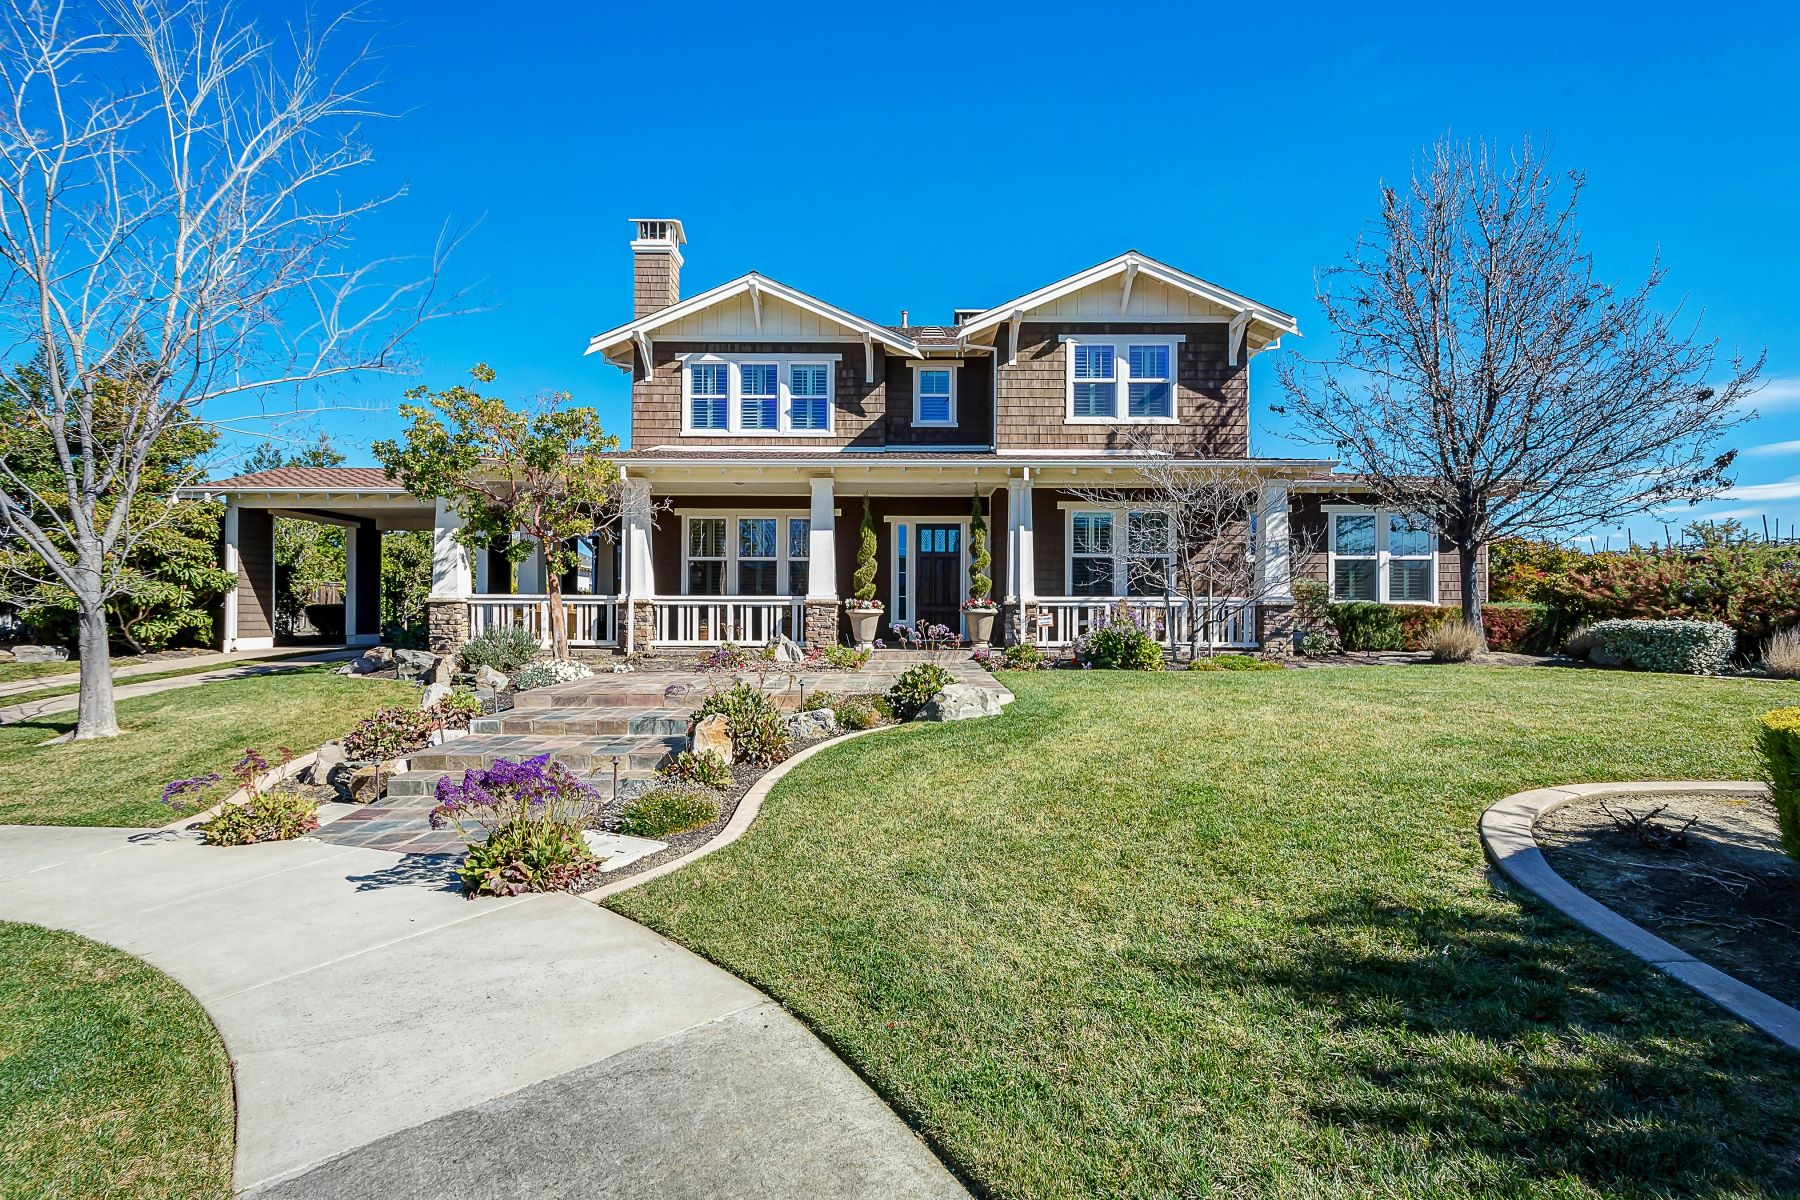 Wine Country Beauty 3274 Derby Court Livermore, California 94550 United States